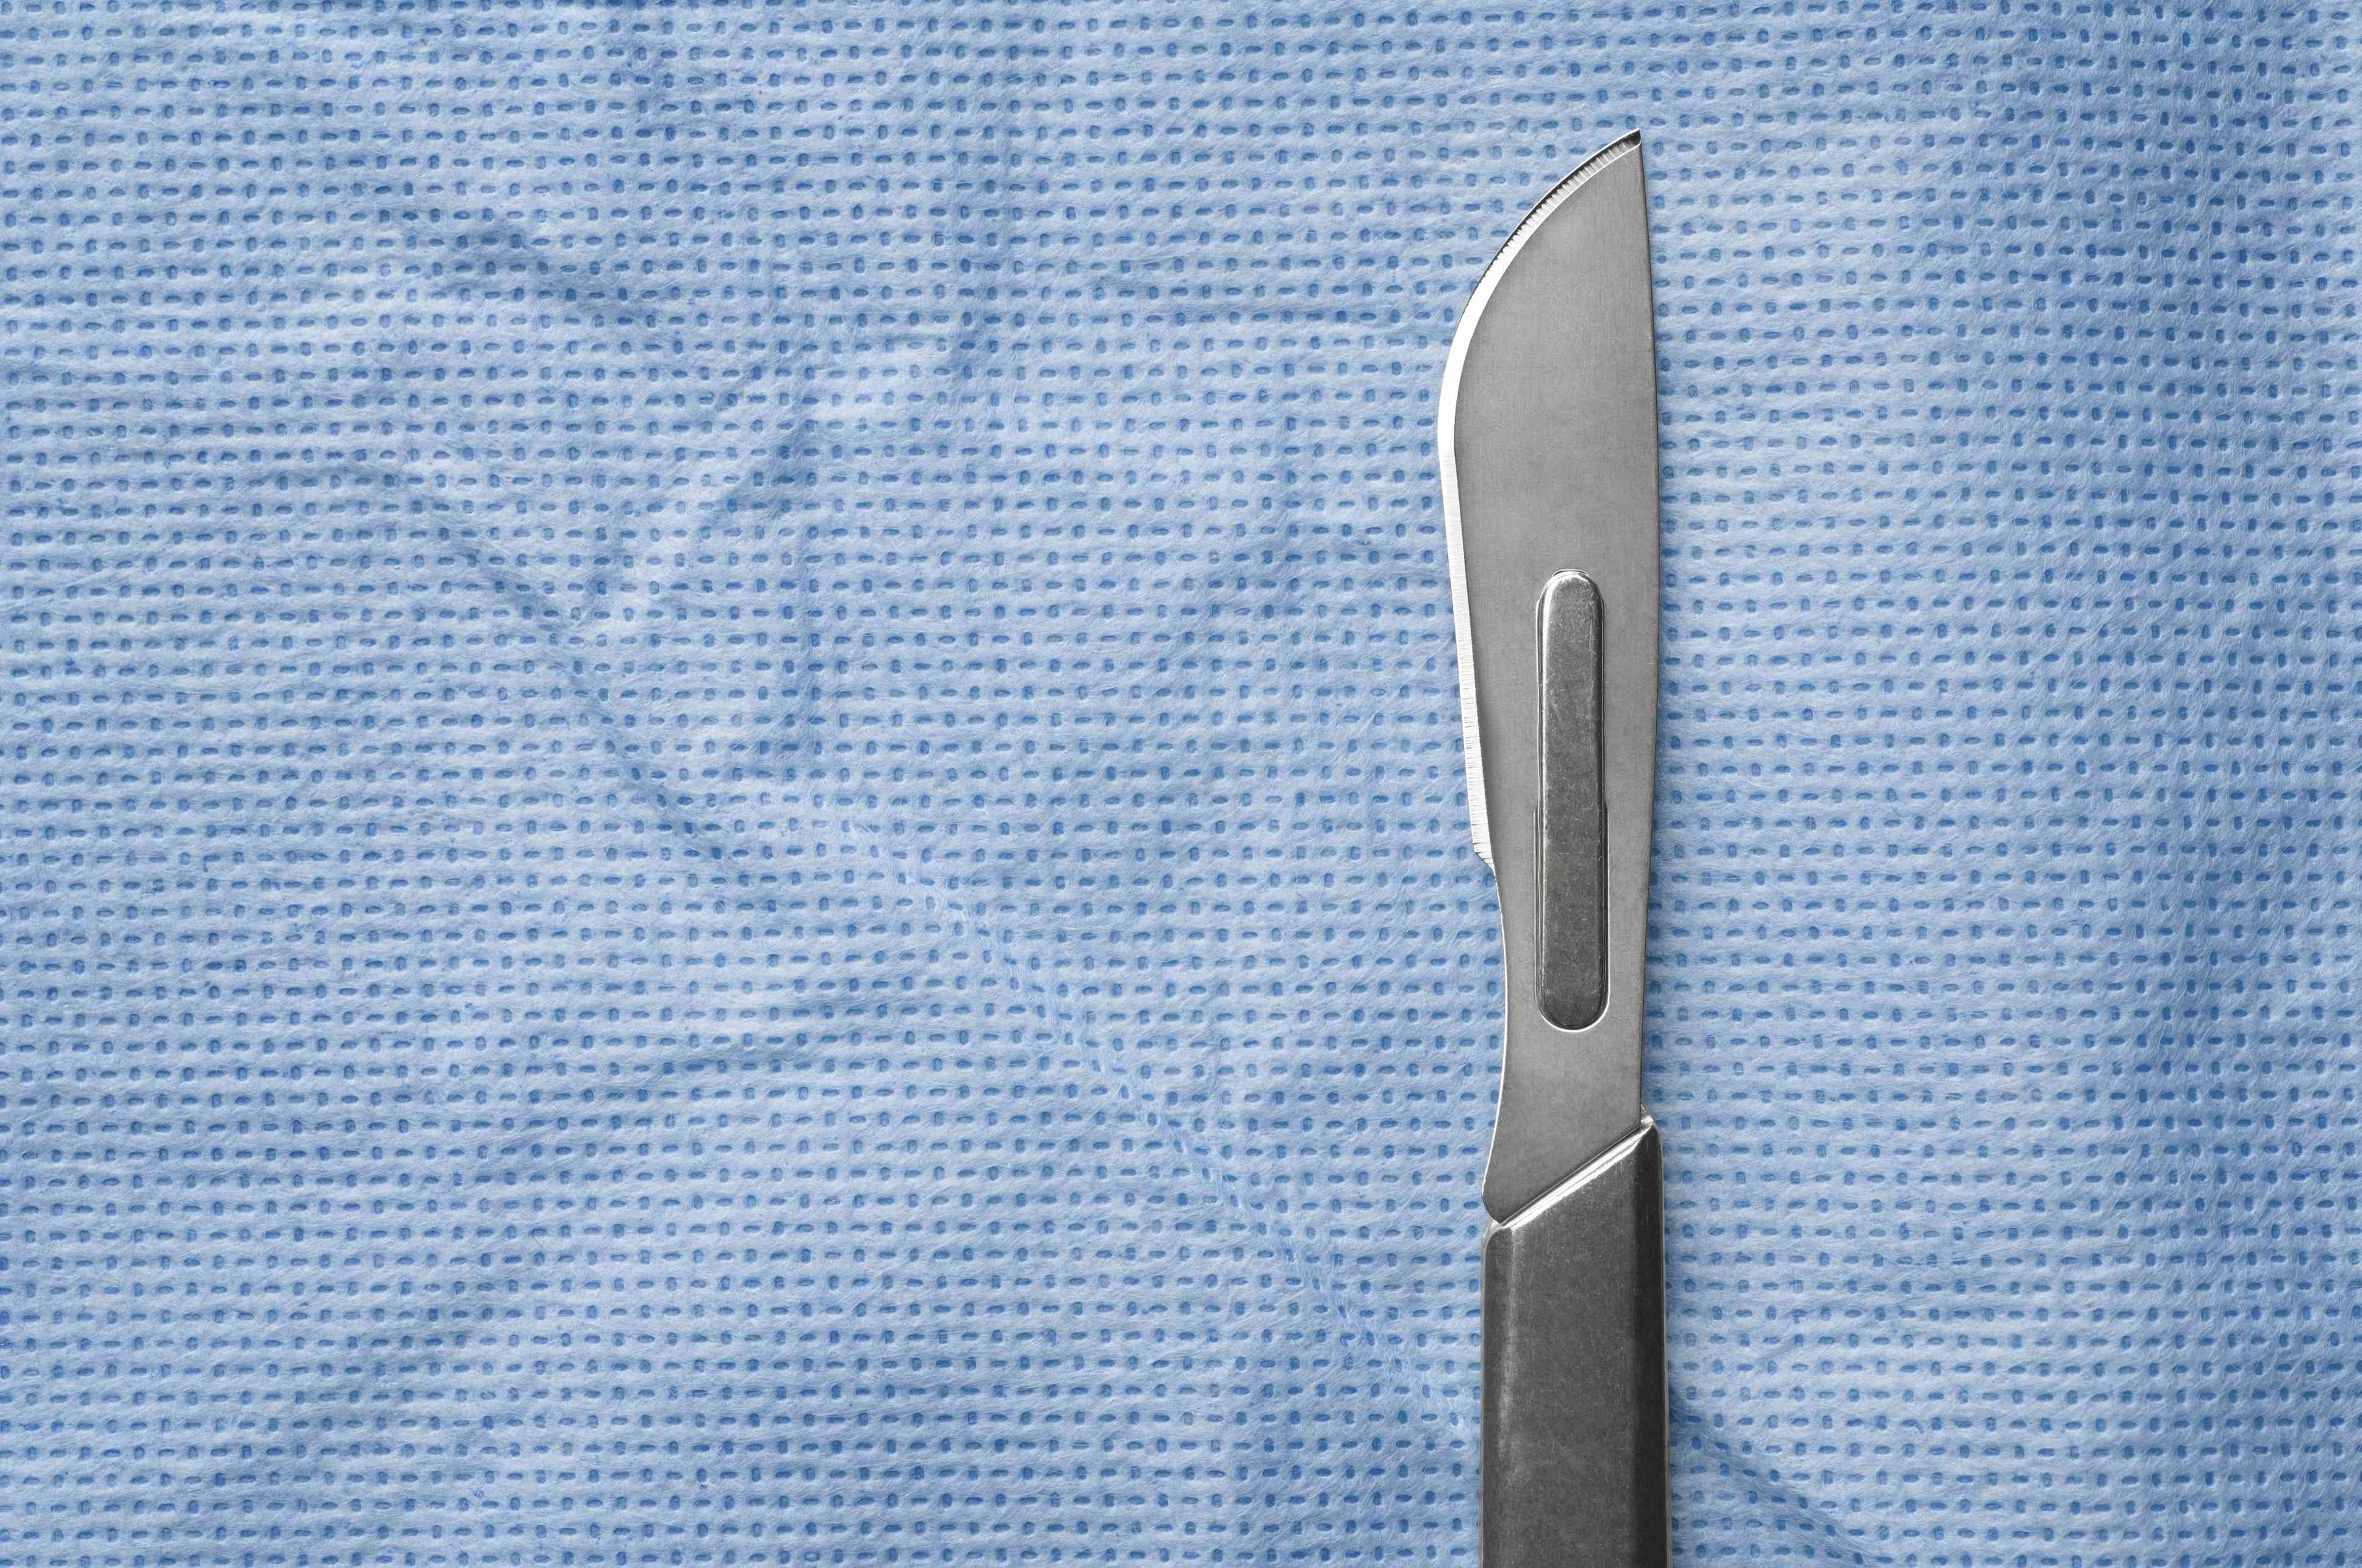 A scalpel on surgical cloth